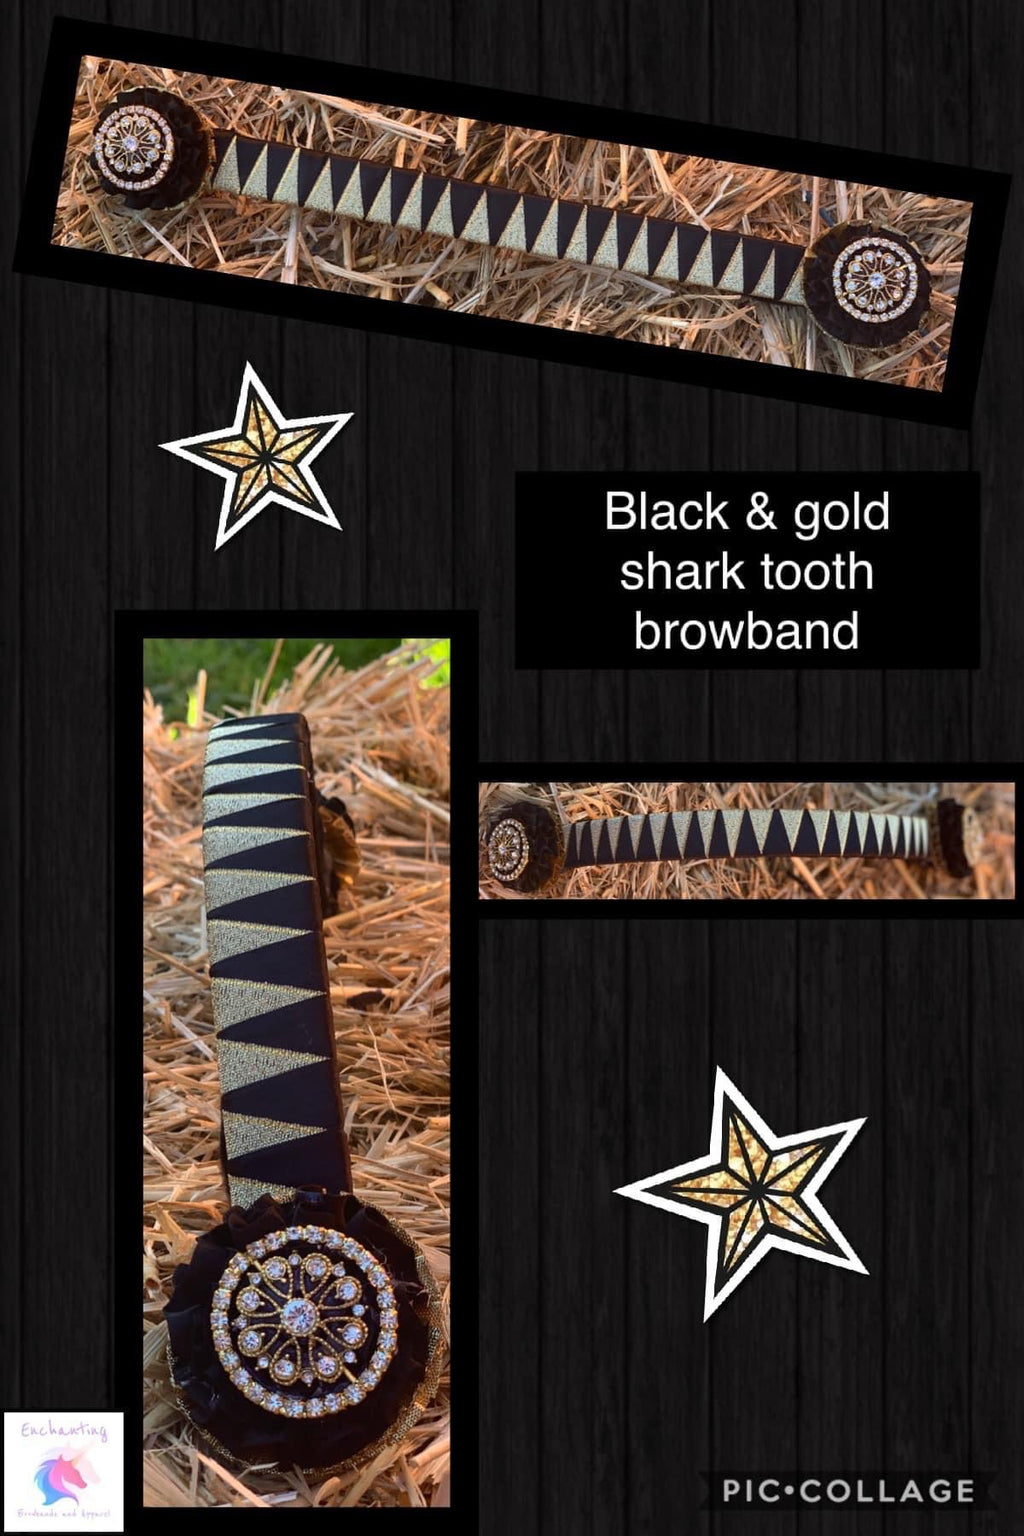 Black & gold sharktooth browband